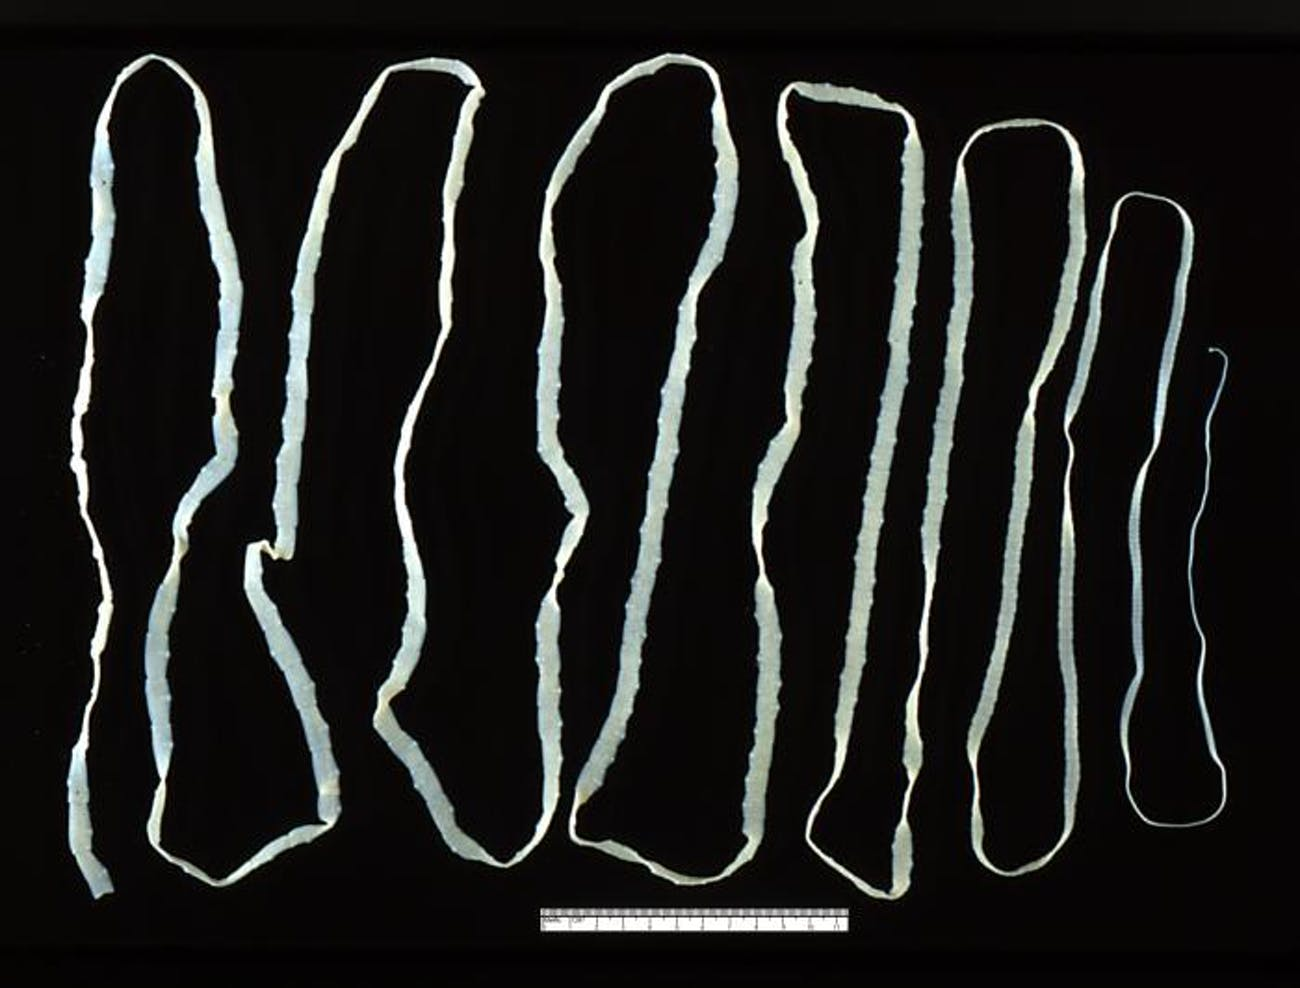 an overview of the species of tapeworms Tapeworms are ribbonlike, segmented flatworms that parasitize humans the vast majority of tapeworm infections are caused by ingestion of undercooked or raw meat or fish tapeworms range in size from a few centimeters to a dozen meters depending on species.